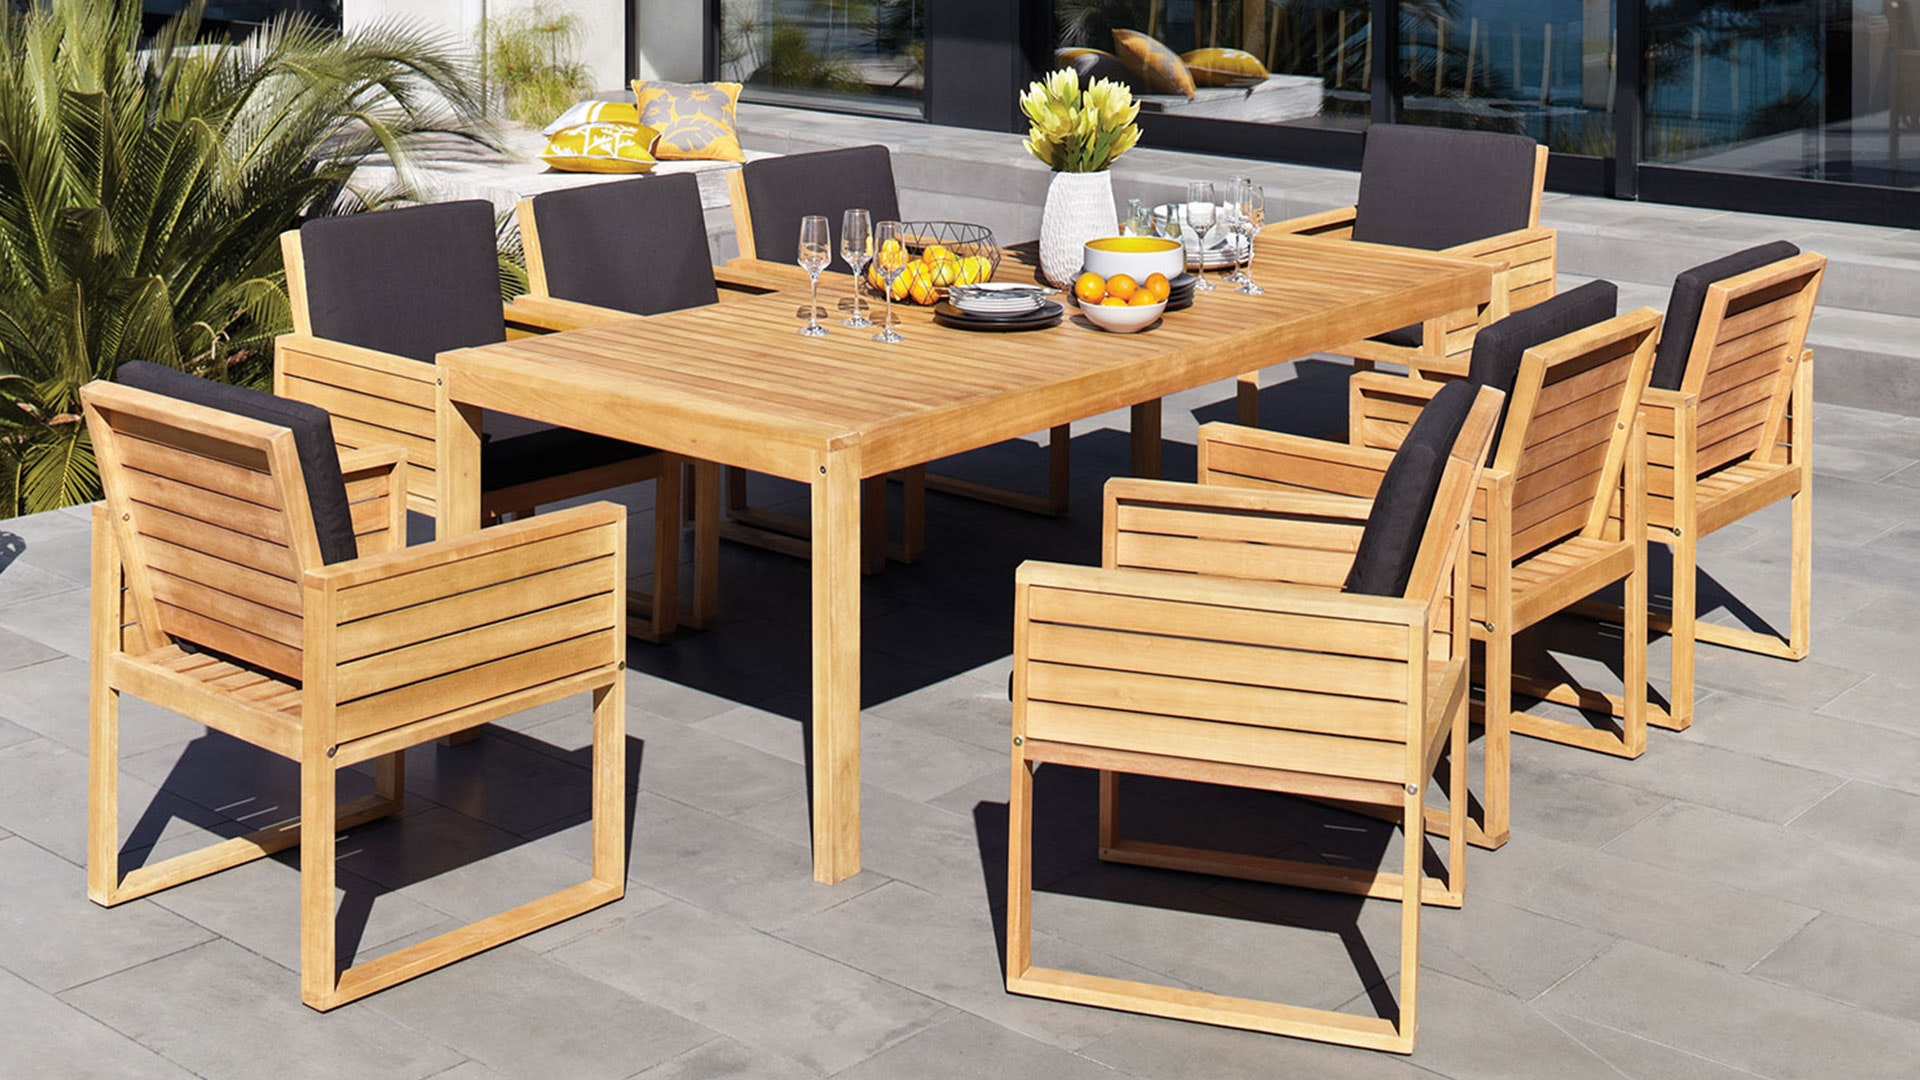 100 Outdoor Furniture Store Auckland Branch Bistro  : 9 Piece Dining Setting from 173.199.118.48 size 1920 x 1080 jpeg 260kB